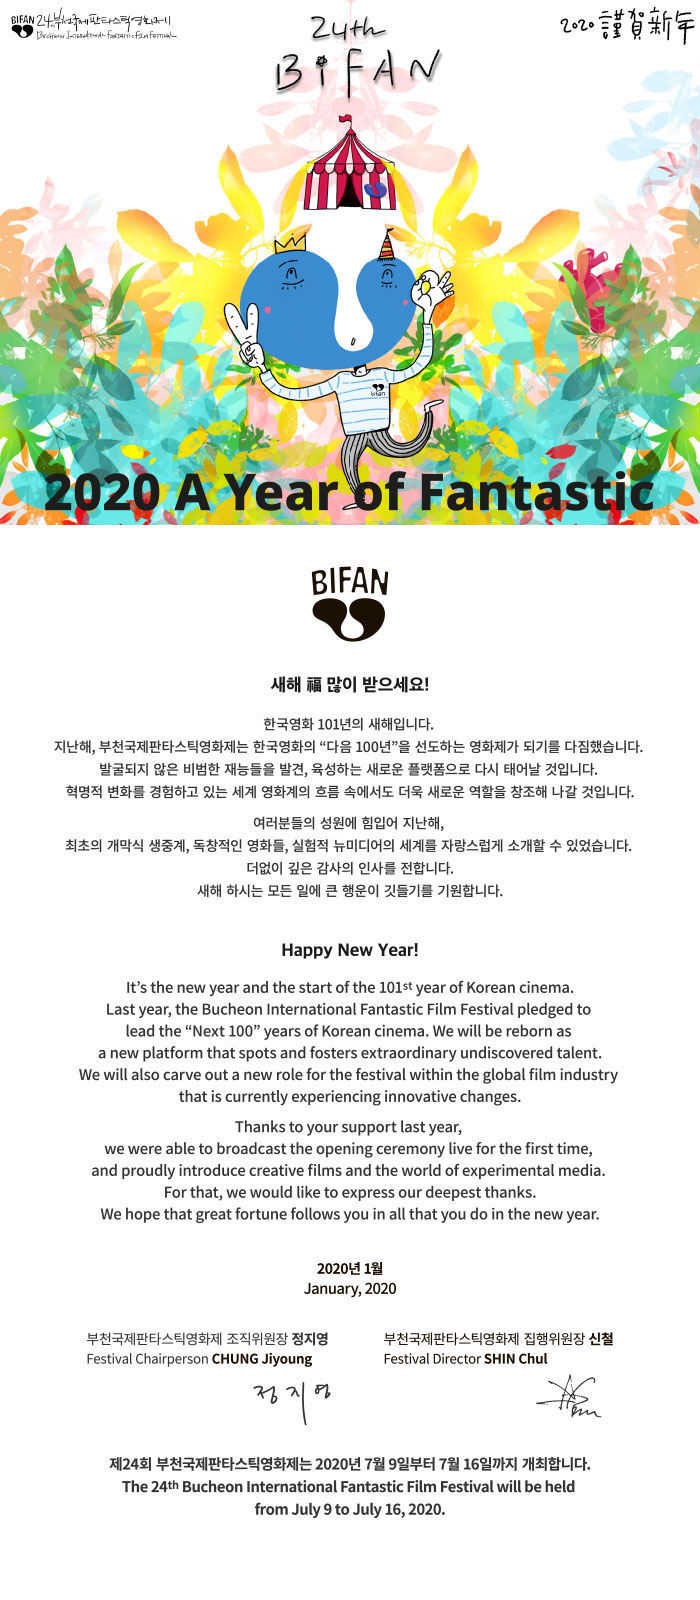 BIFAN2020, Happy New Year!